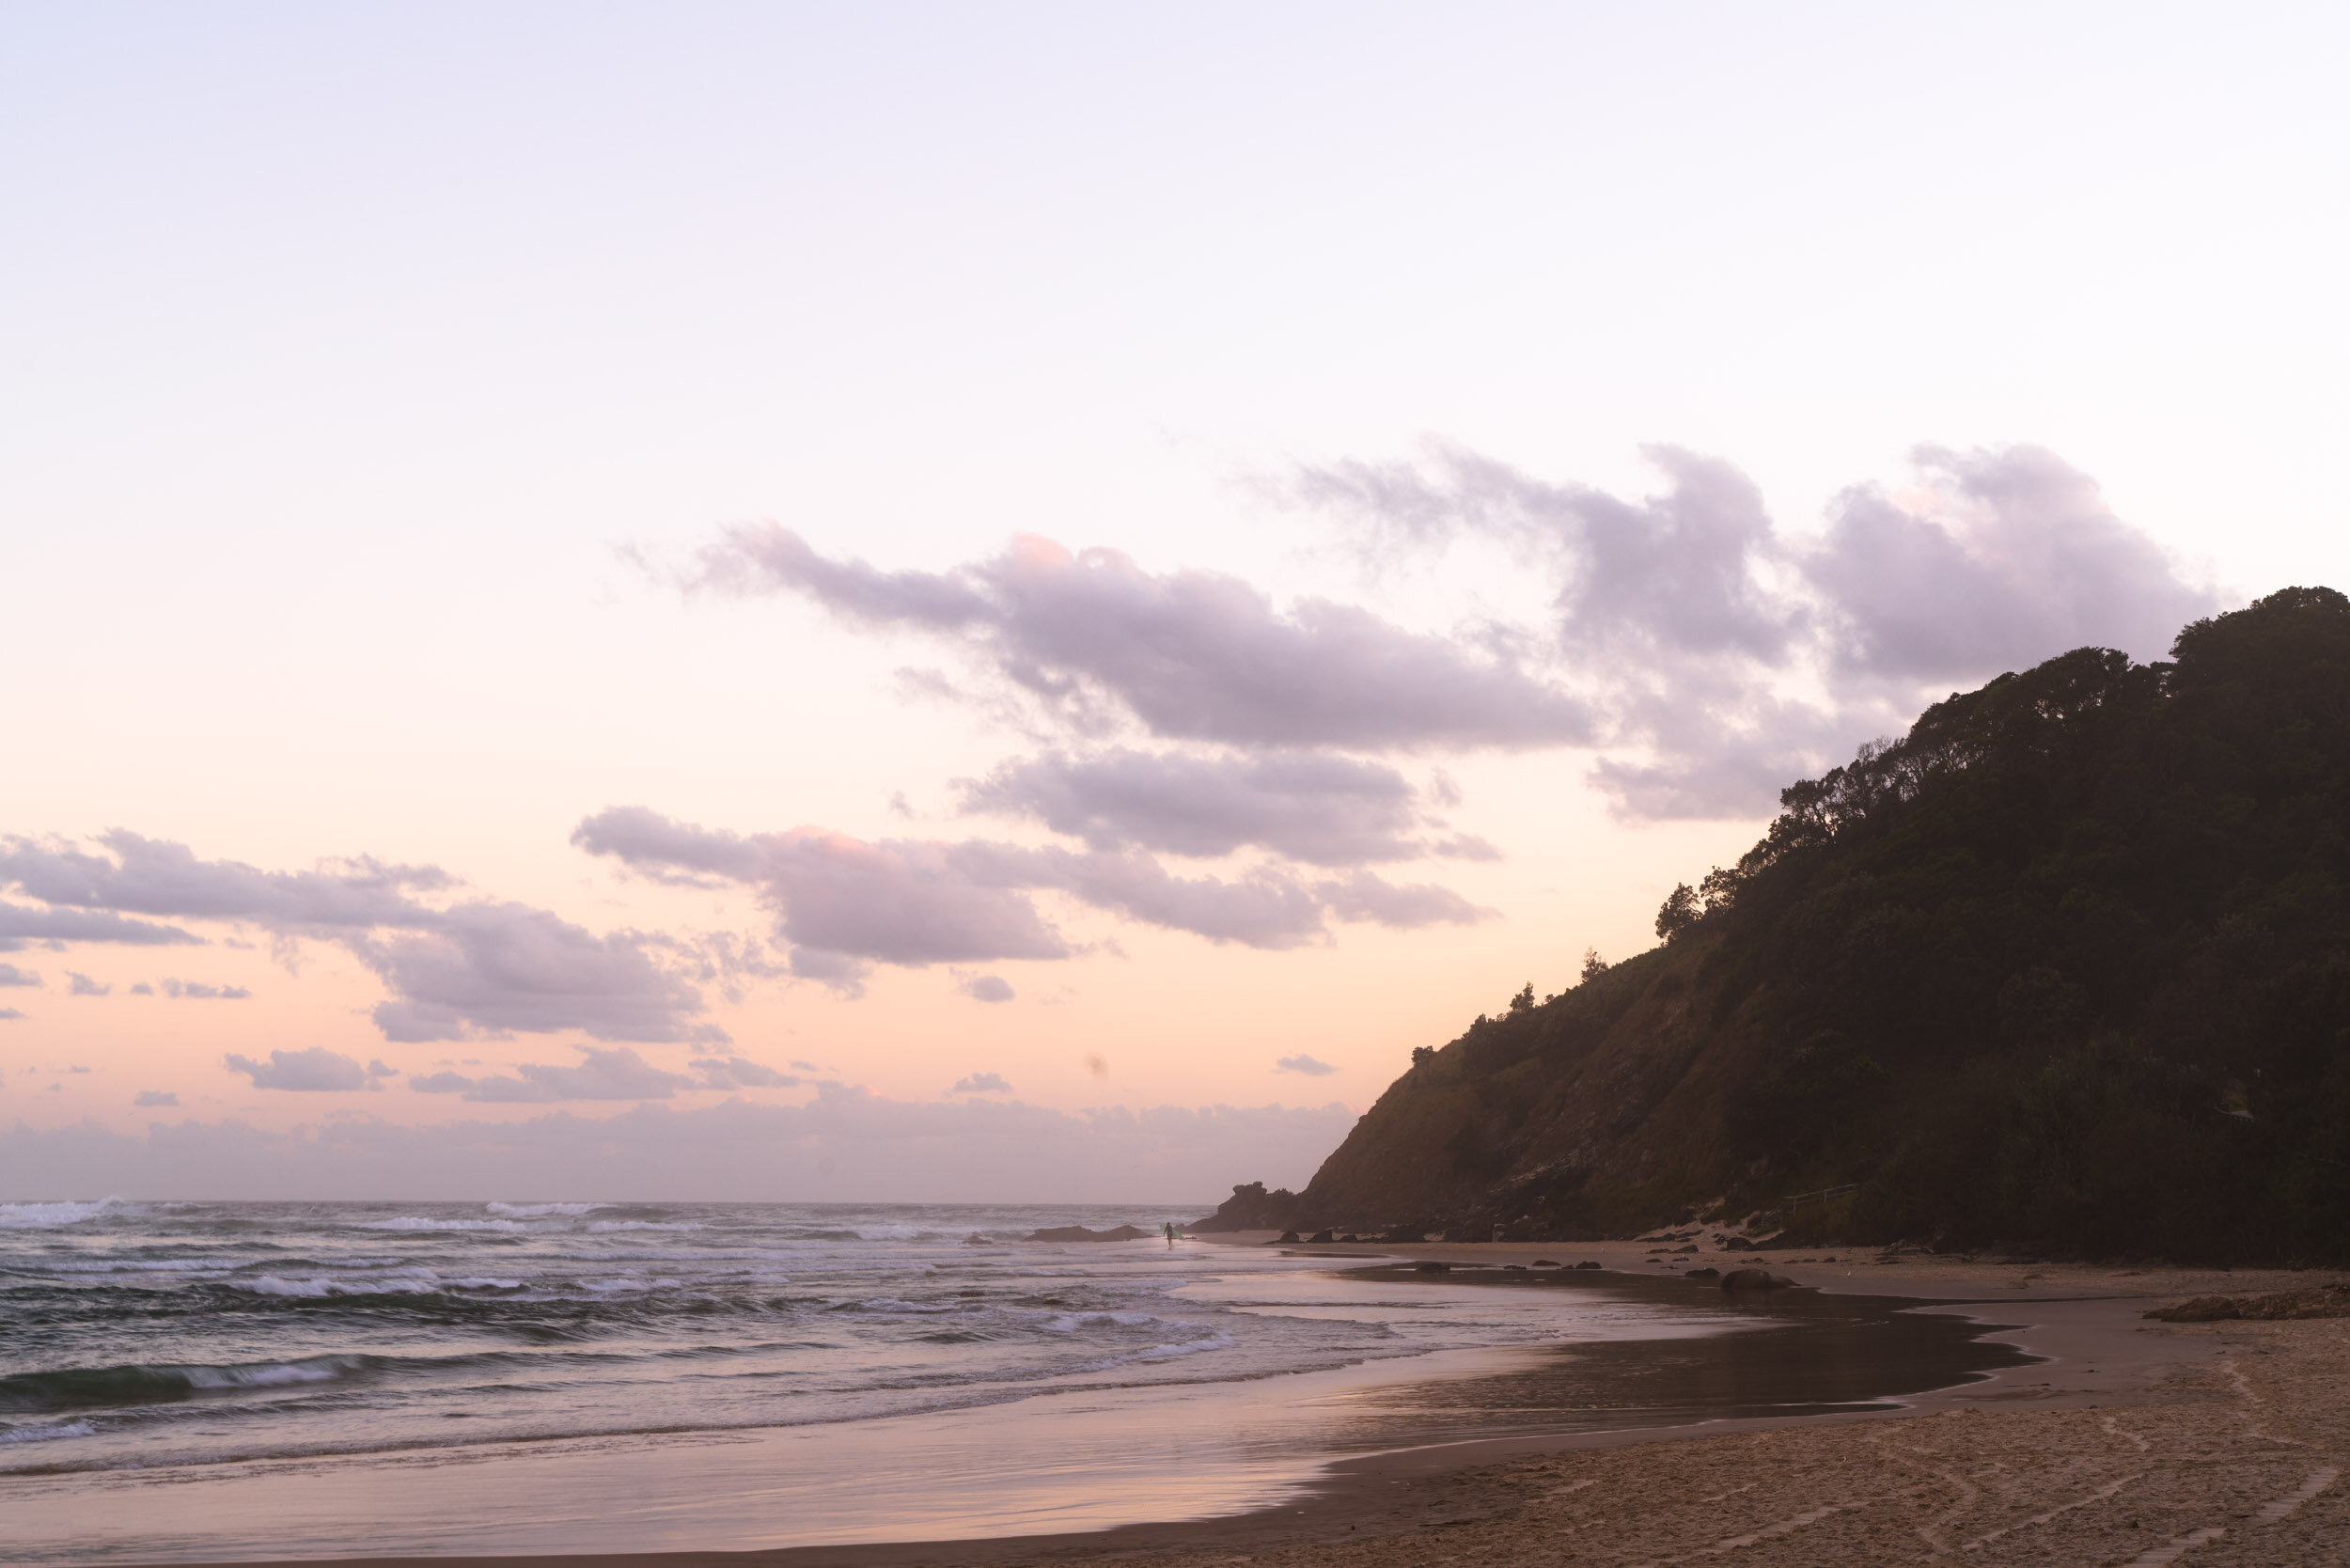 A surfer at sunrise heading out to the break at Wategos Beach.